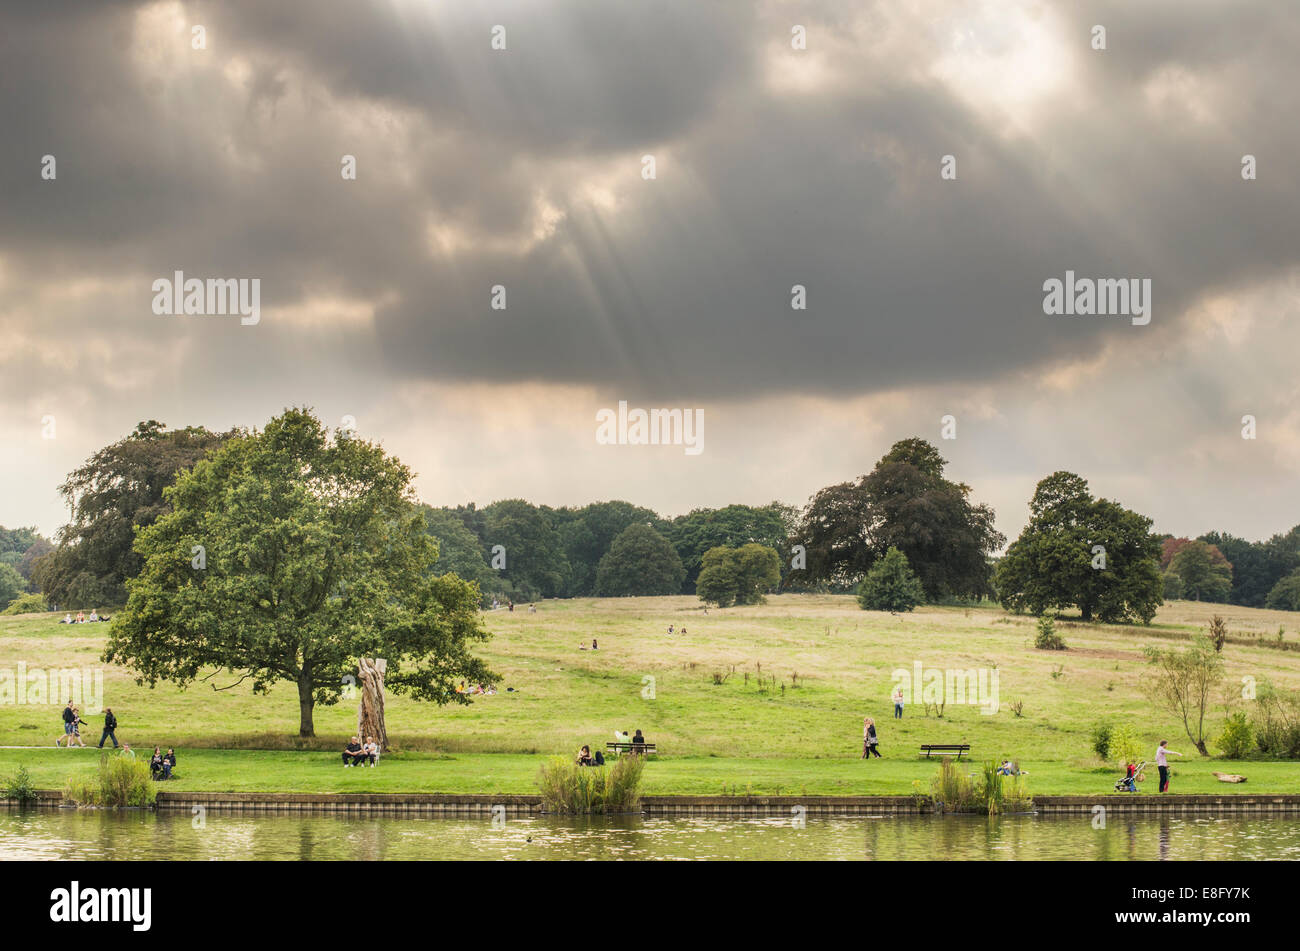 Cloudy day at Hampstead Heath, North London park. - Stock Image